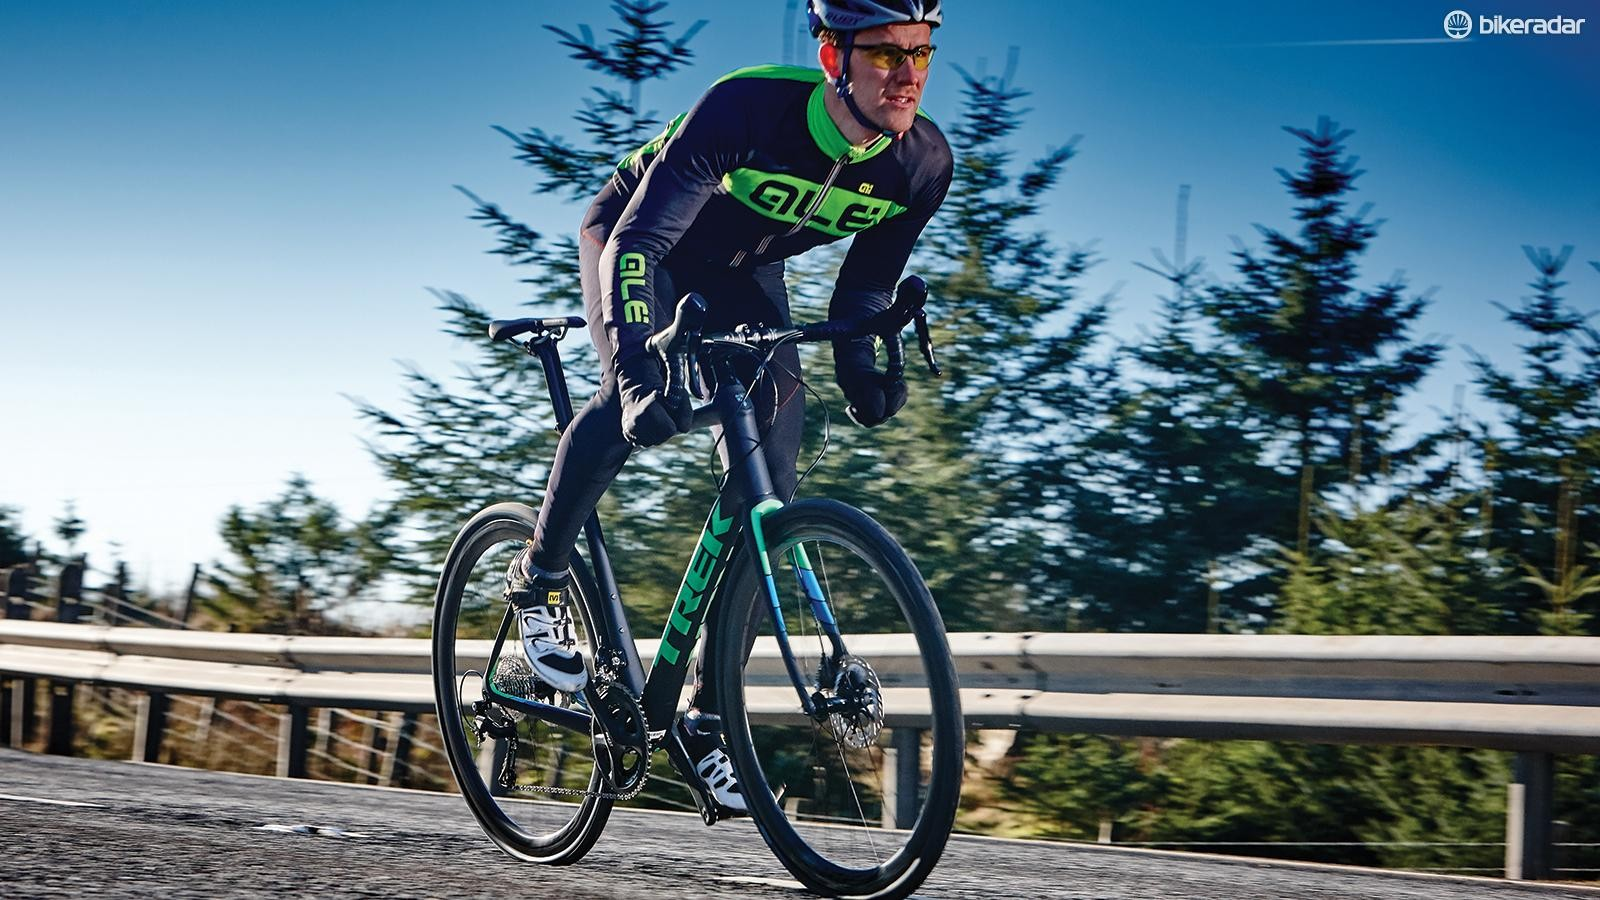 The SL crushes road buzz until it's not a factor, but you still get enough feedback to judge grip